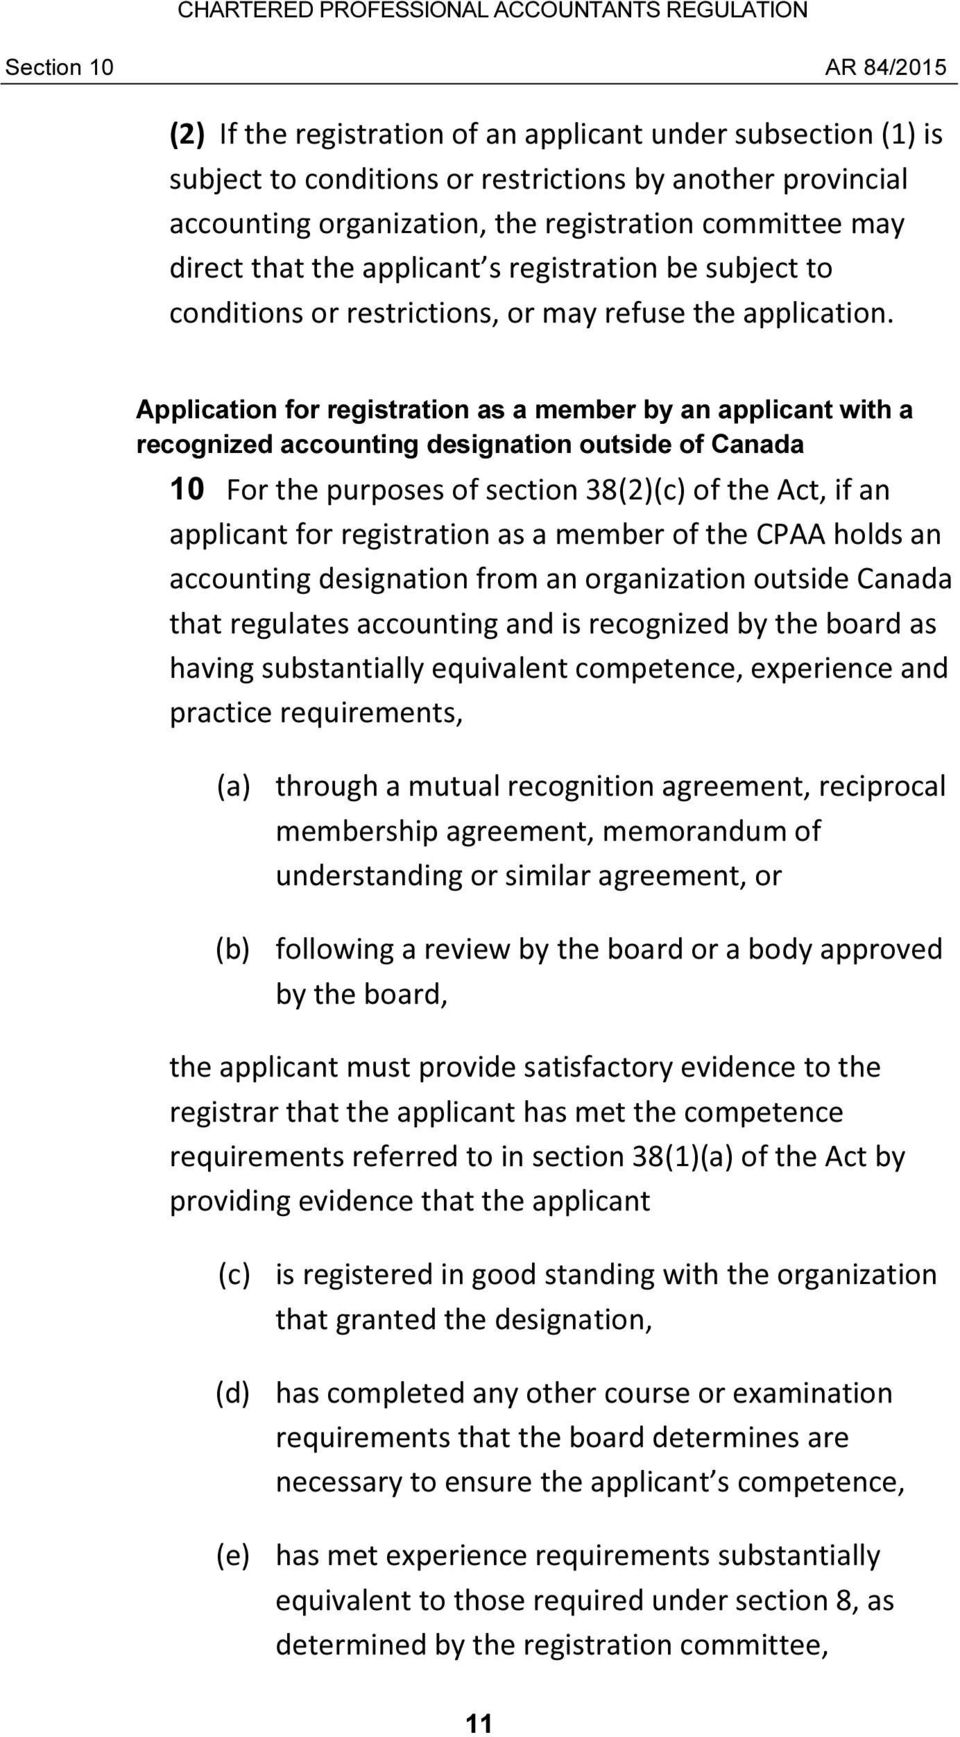 Application for registration as a member by an applicant with a recognized accounting designation outside of Canada 10 For the purposes of section 38(2)(c) of the Act, if an applicant for